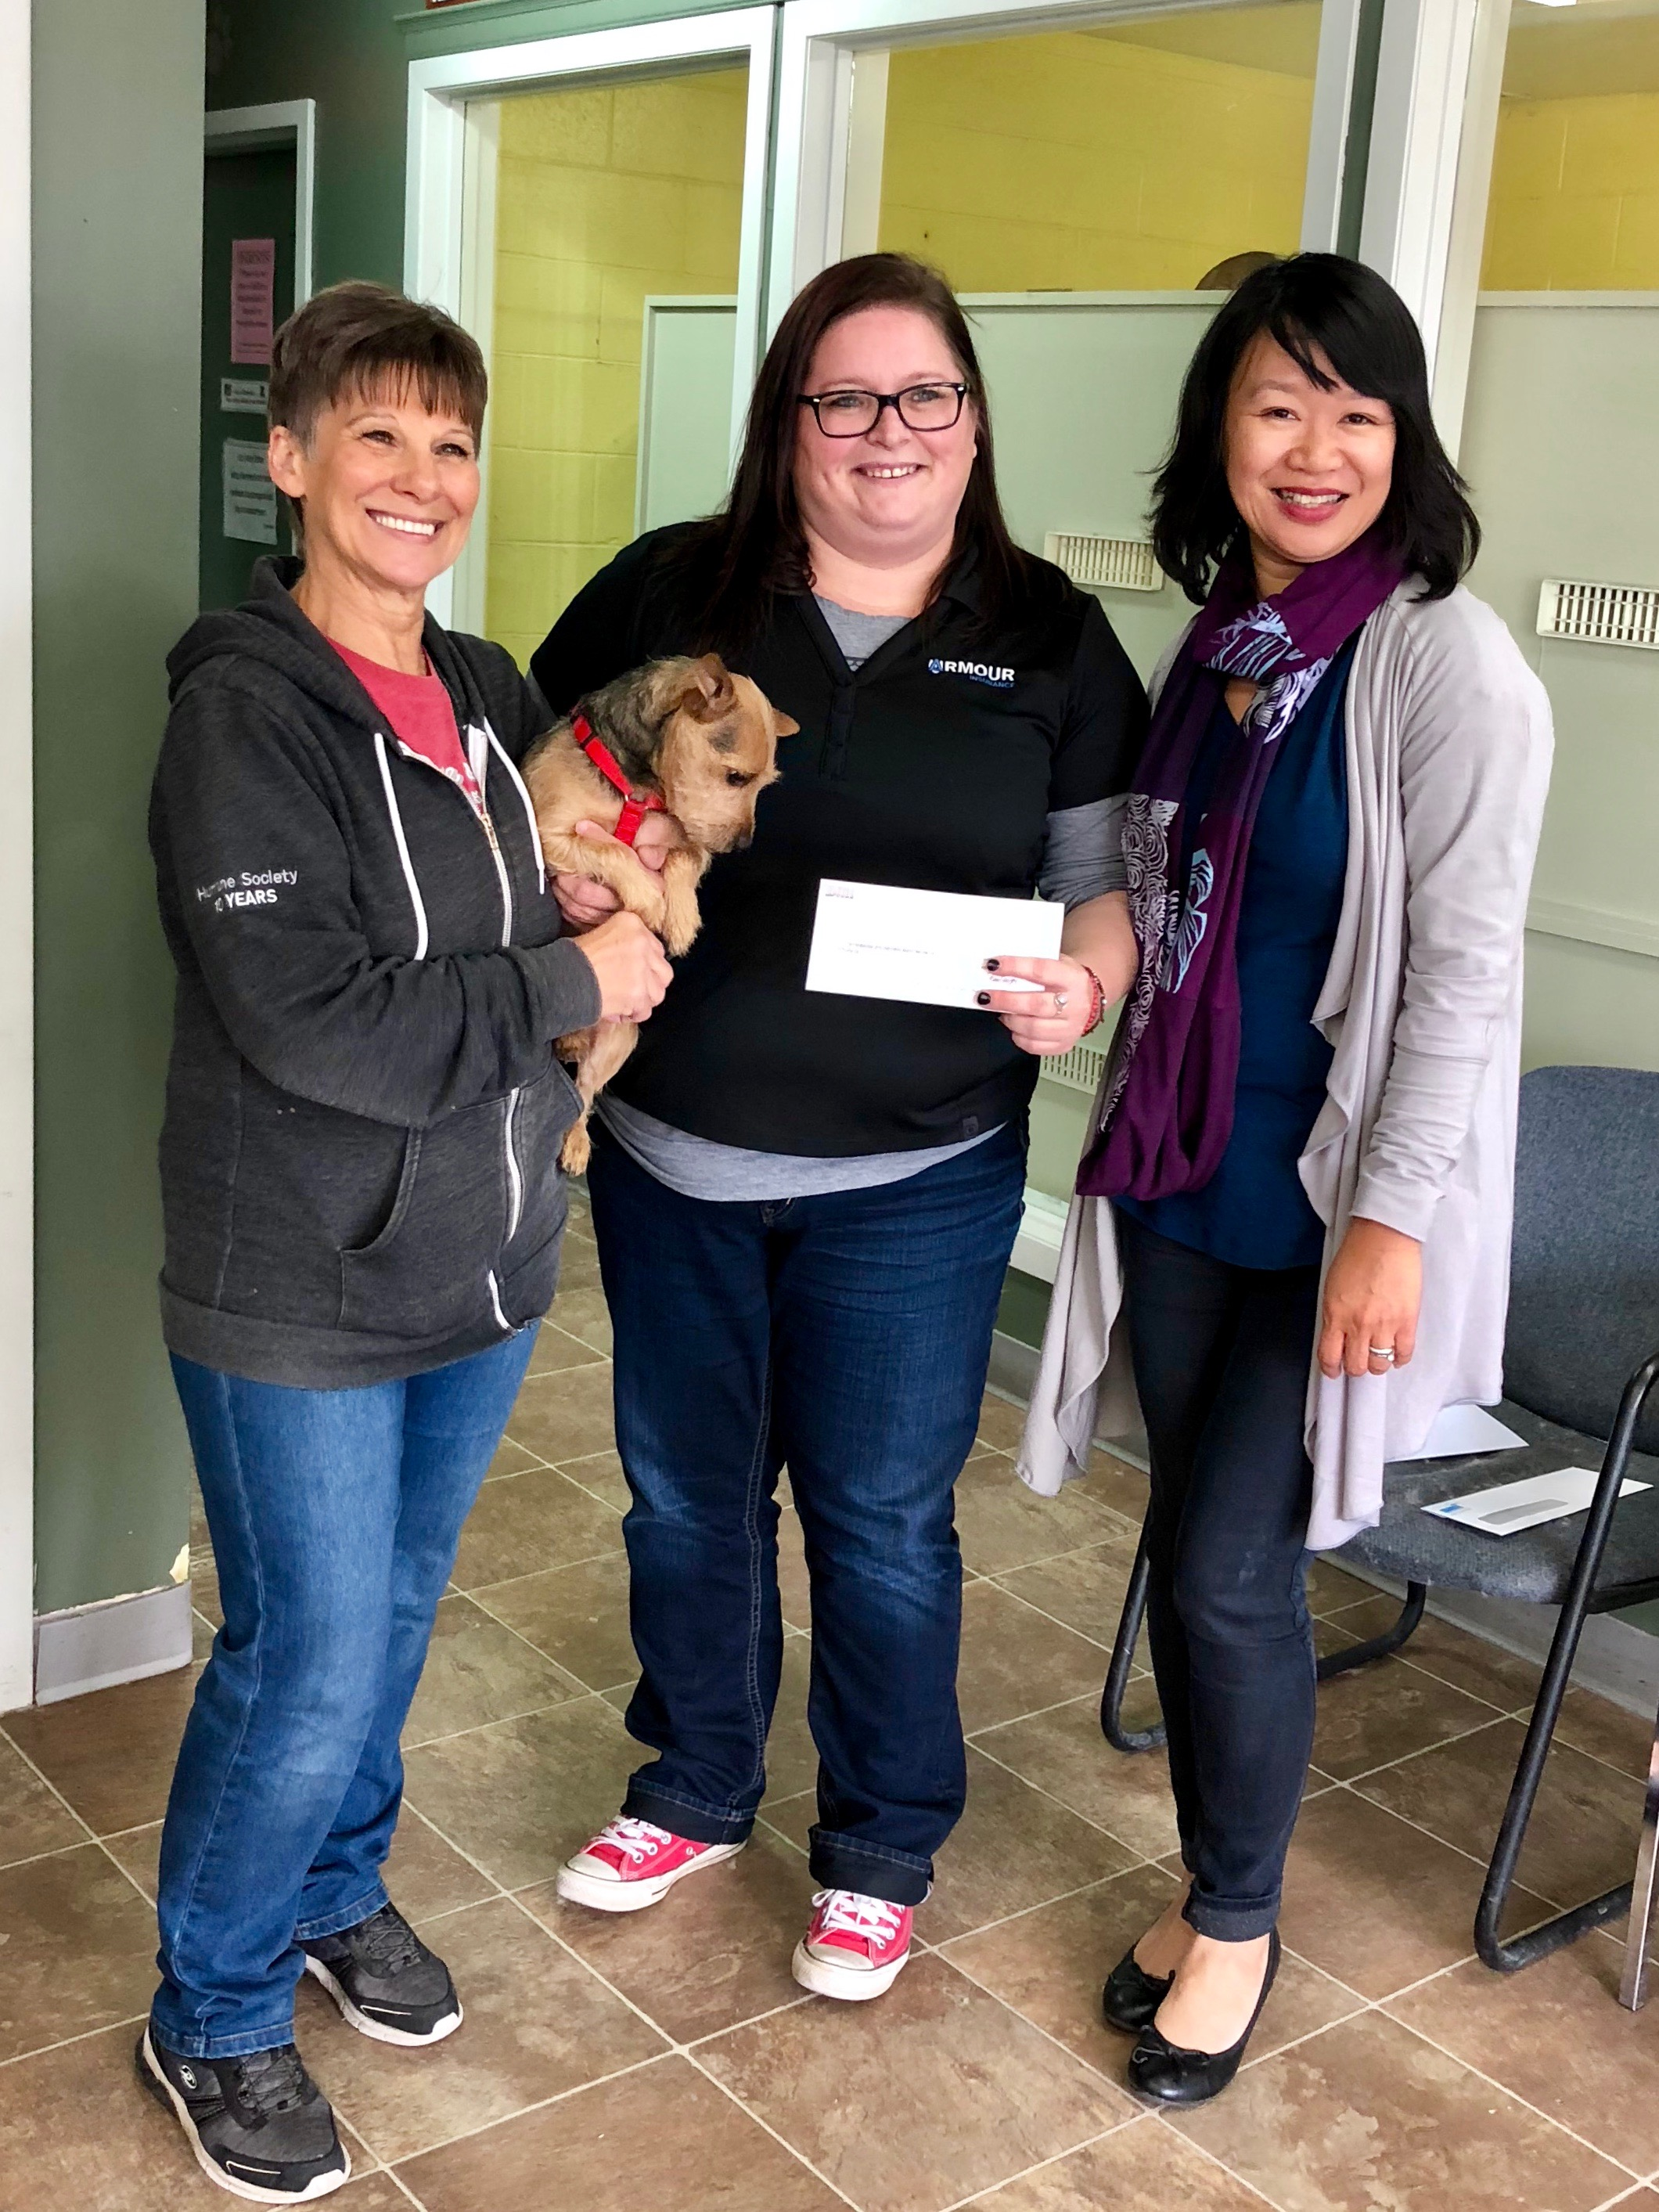 Armour Lethbridge Supports the Lethbridge & District Humane Society